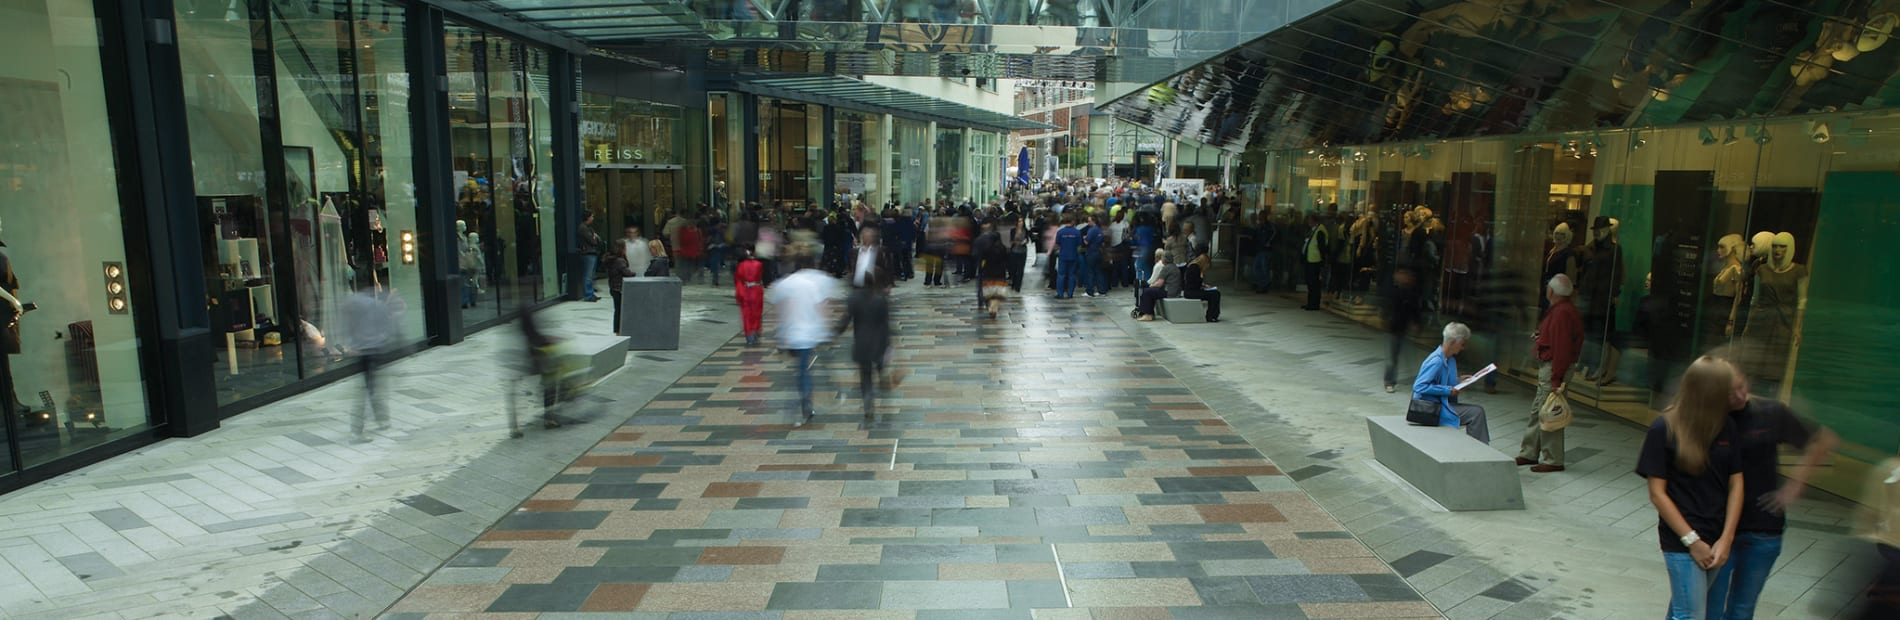 Granite paving in retail shopping centre.